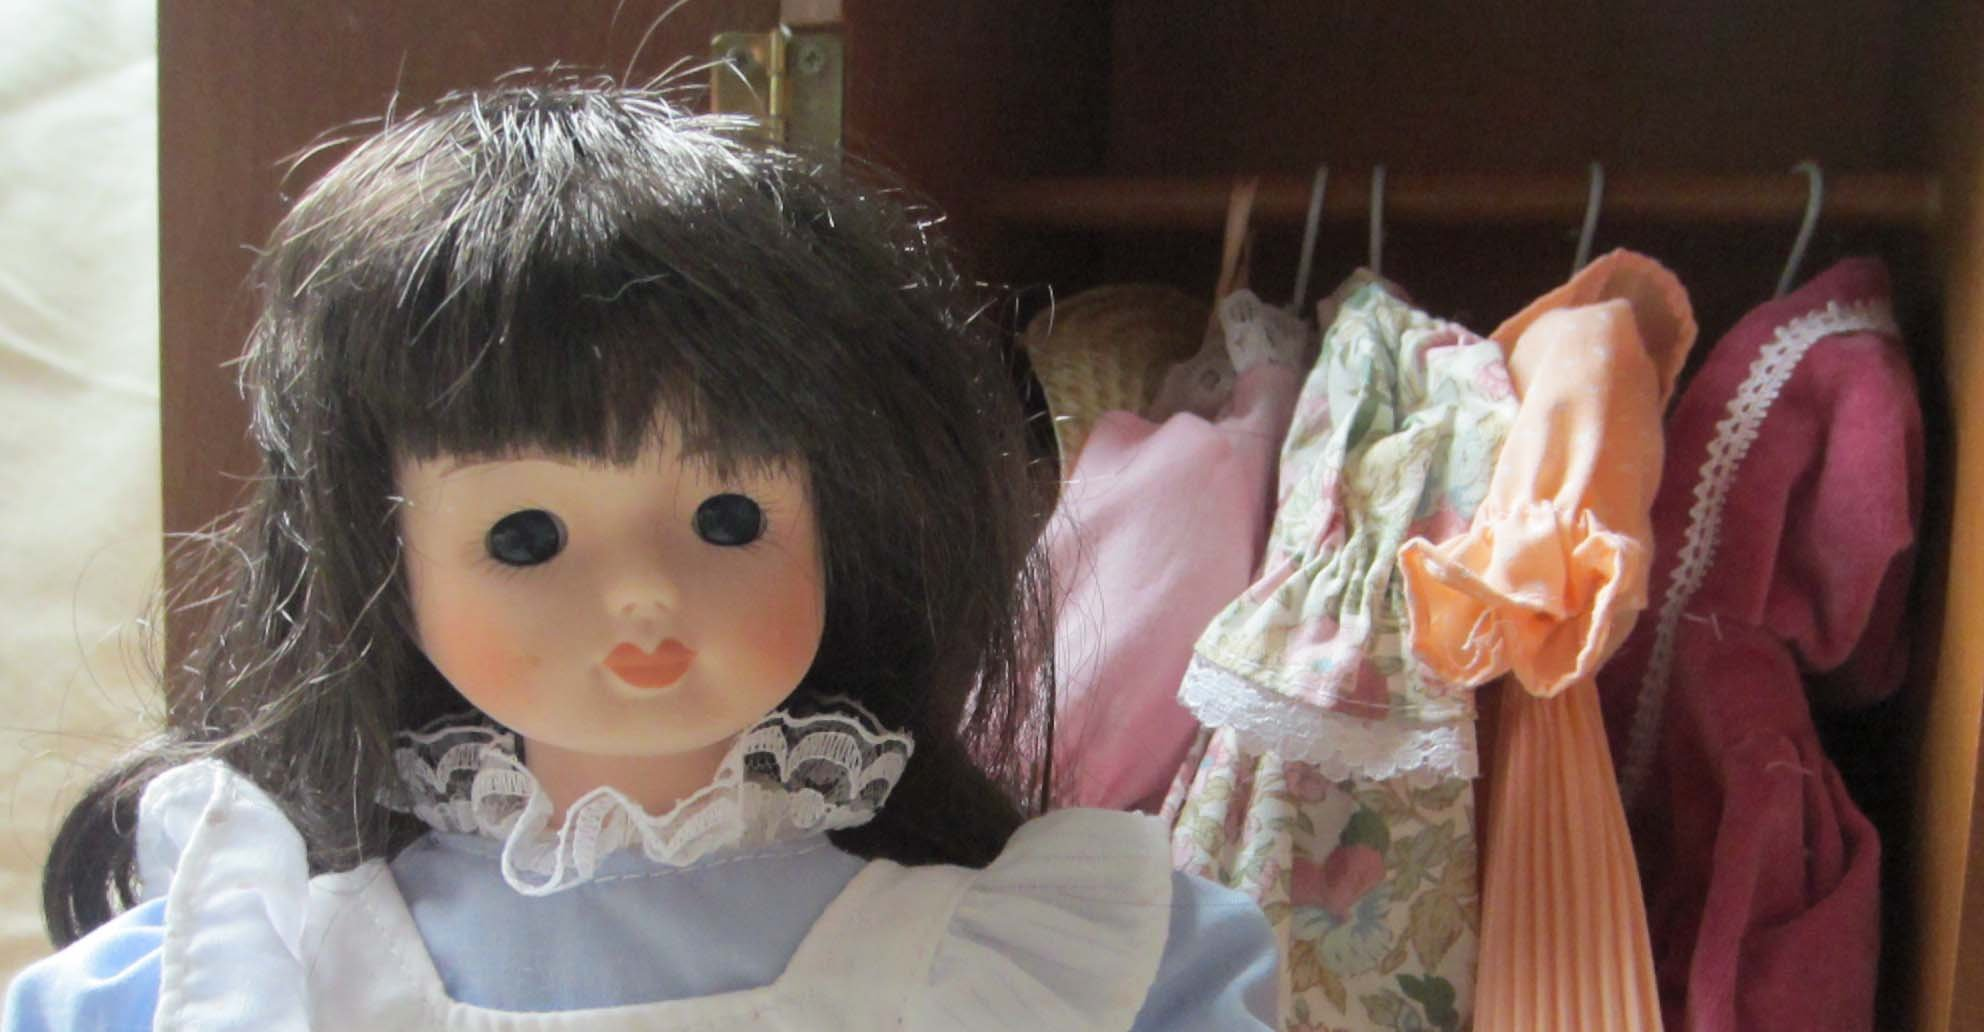 Malaysian Bought A Doll From A Second-Hand Shop But She Later Had The Scare of Her Life - World Of Buzz